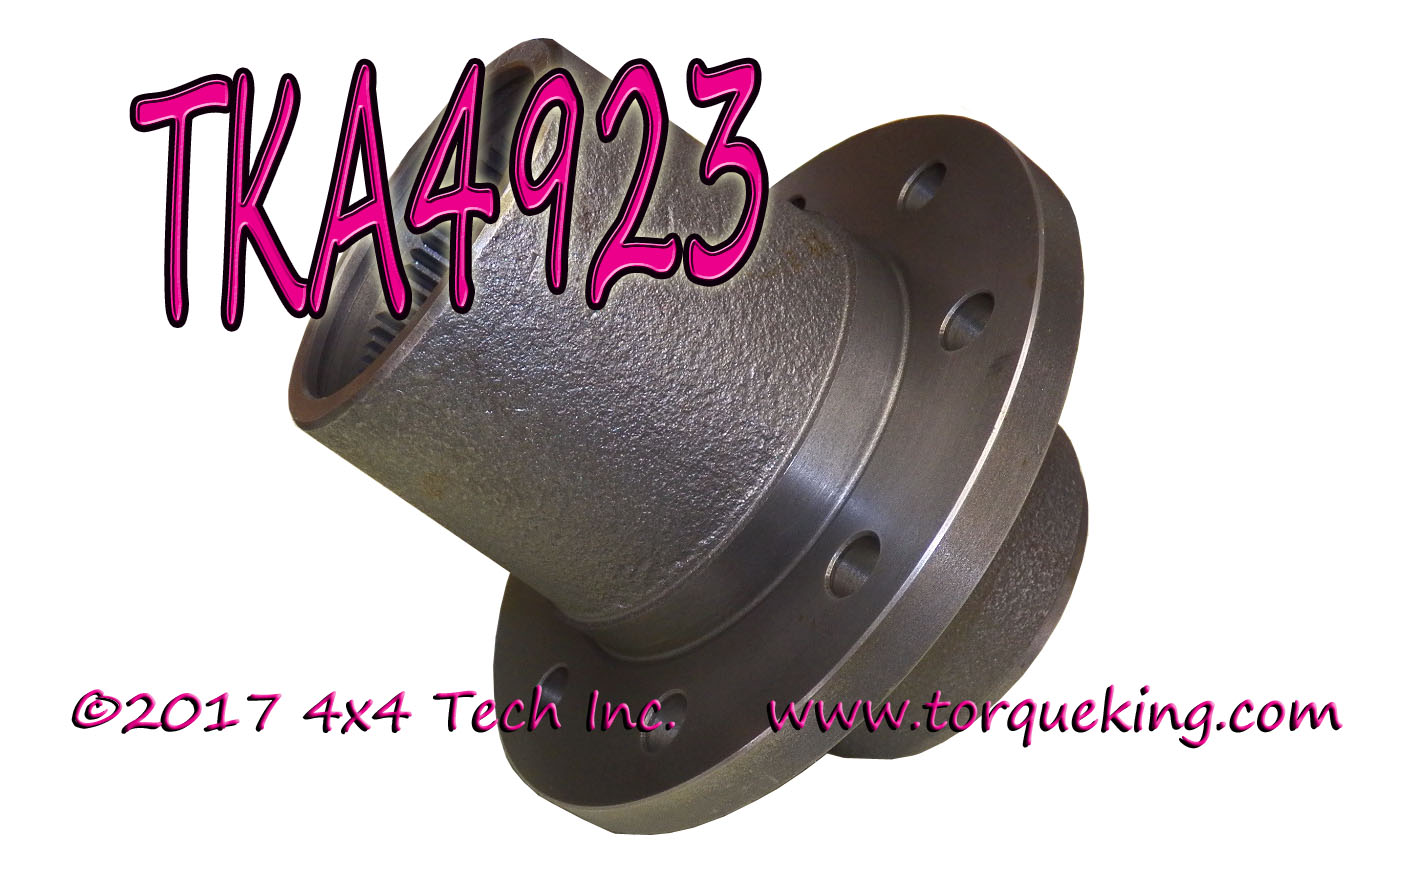 Ford60f19921997 Torque King 4x4. A4923 New 19951997 F350 Front Hub Is A Wheel With Timken Bearing Cups For Dana 60 Axles In Ford 4x4 Trucks. Ford. 1997 Ford F 350 Dana 60 Front Axle Diagram At Scoala.co